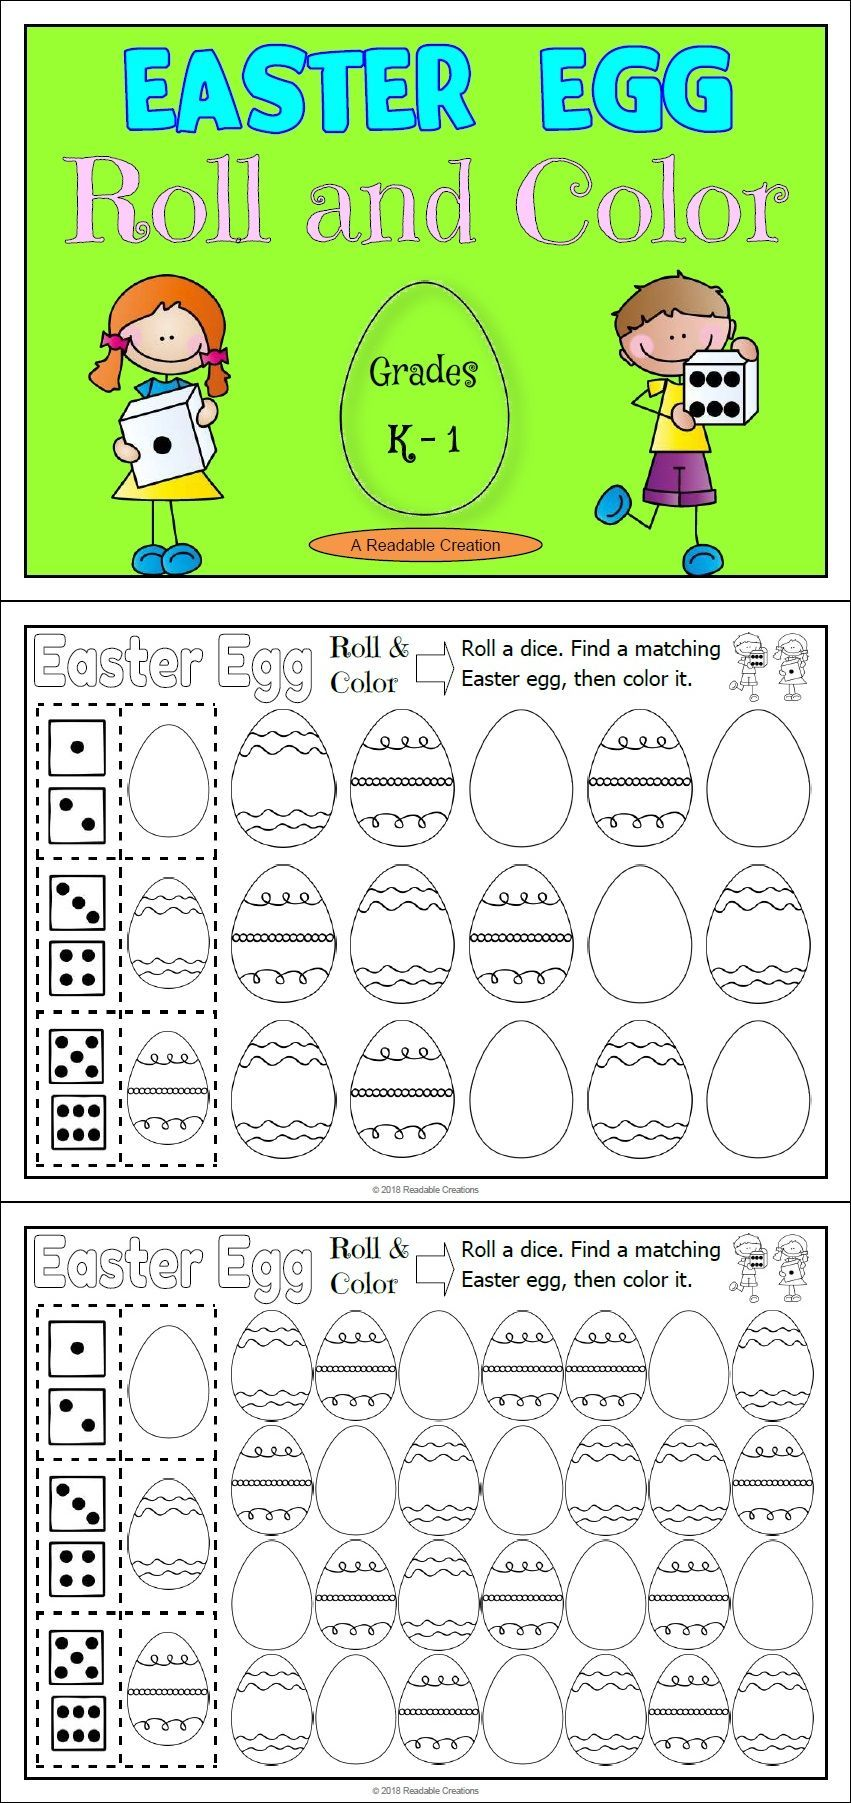 Easter Egg Roll and Color / Colour | TpT Math Lessons | Pinterest ...